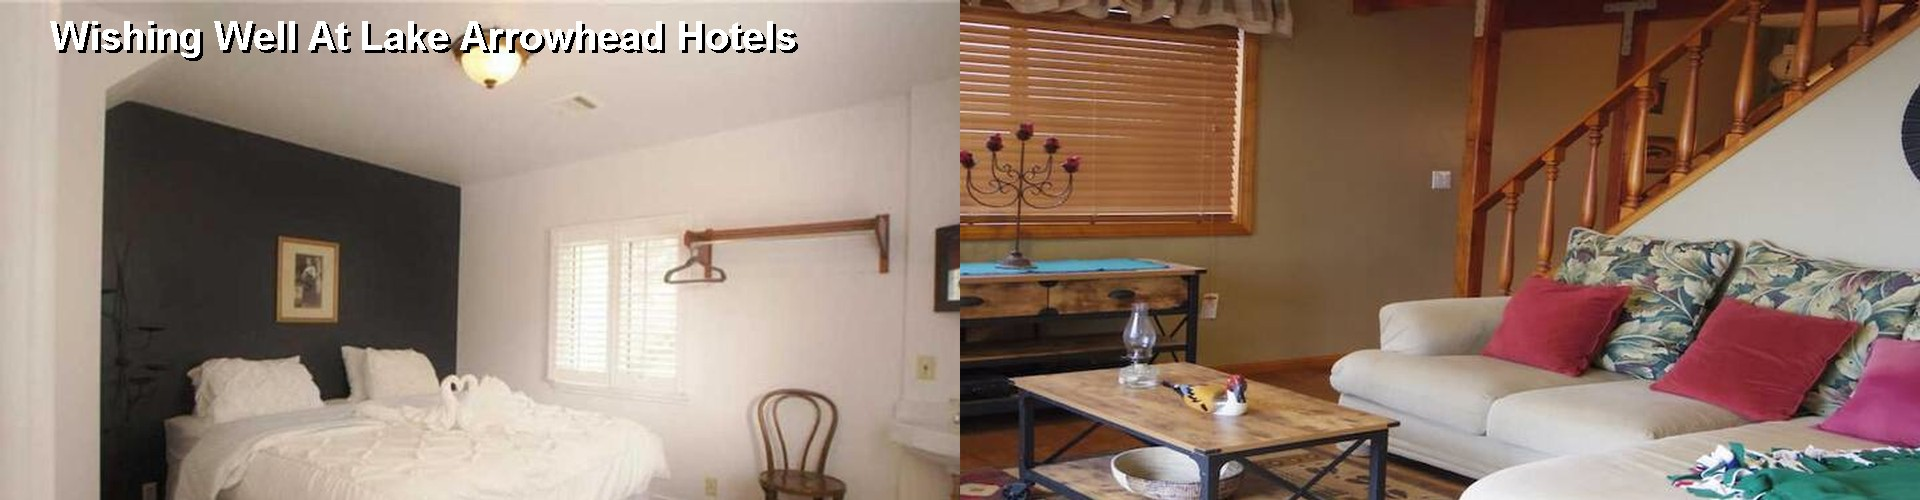 5 Best Hotels near Wishing Well At Lake Arrowhead